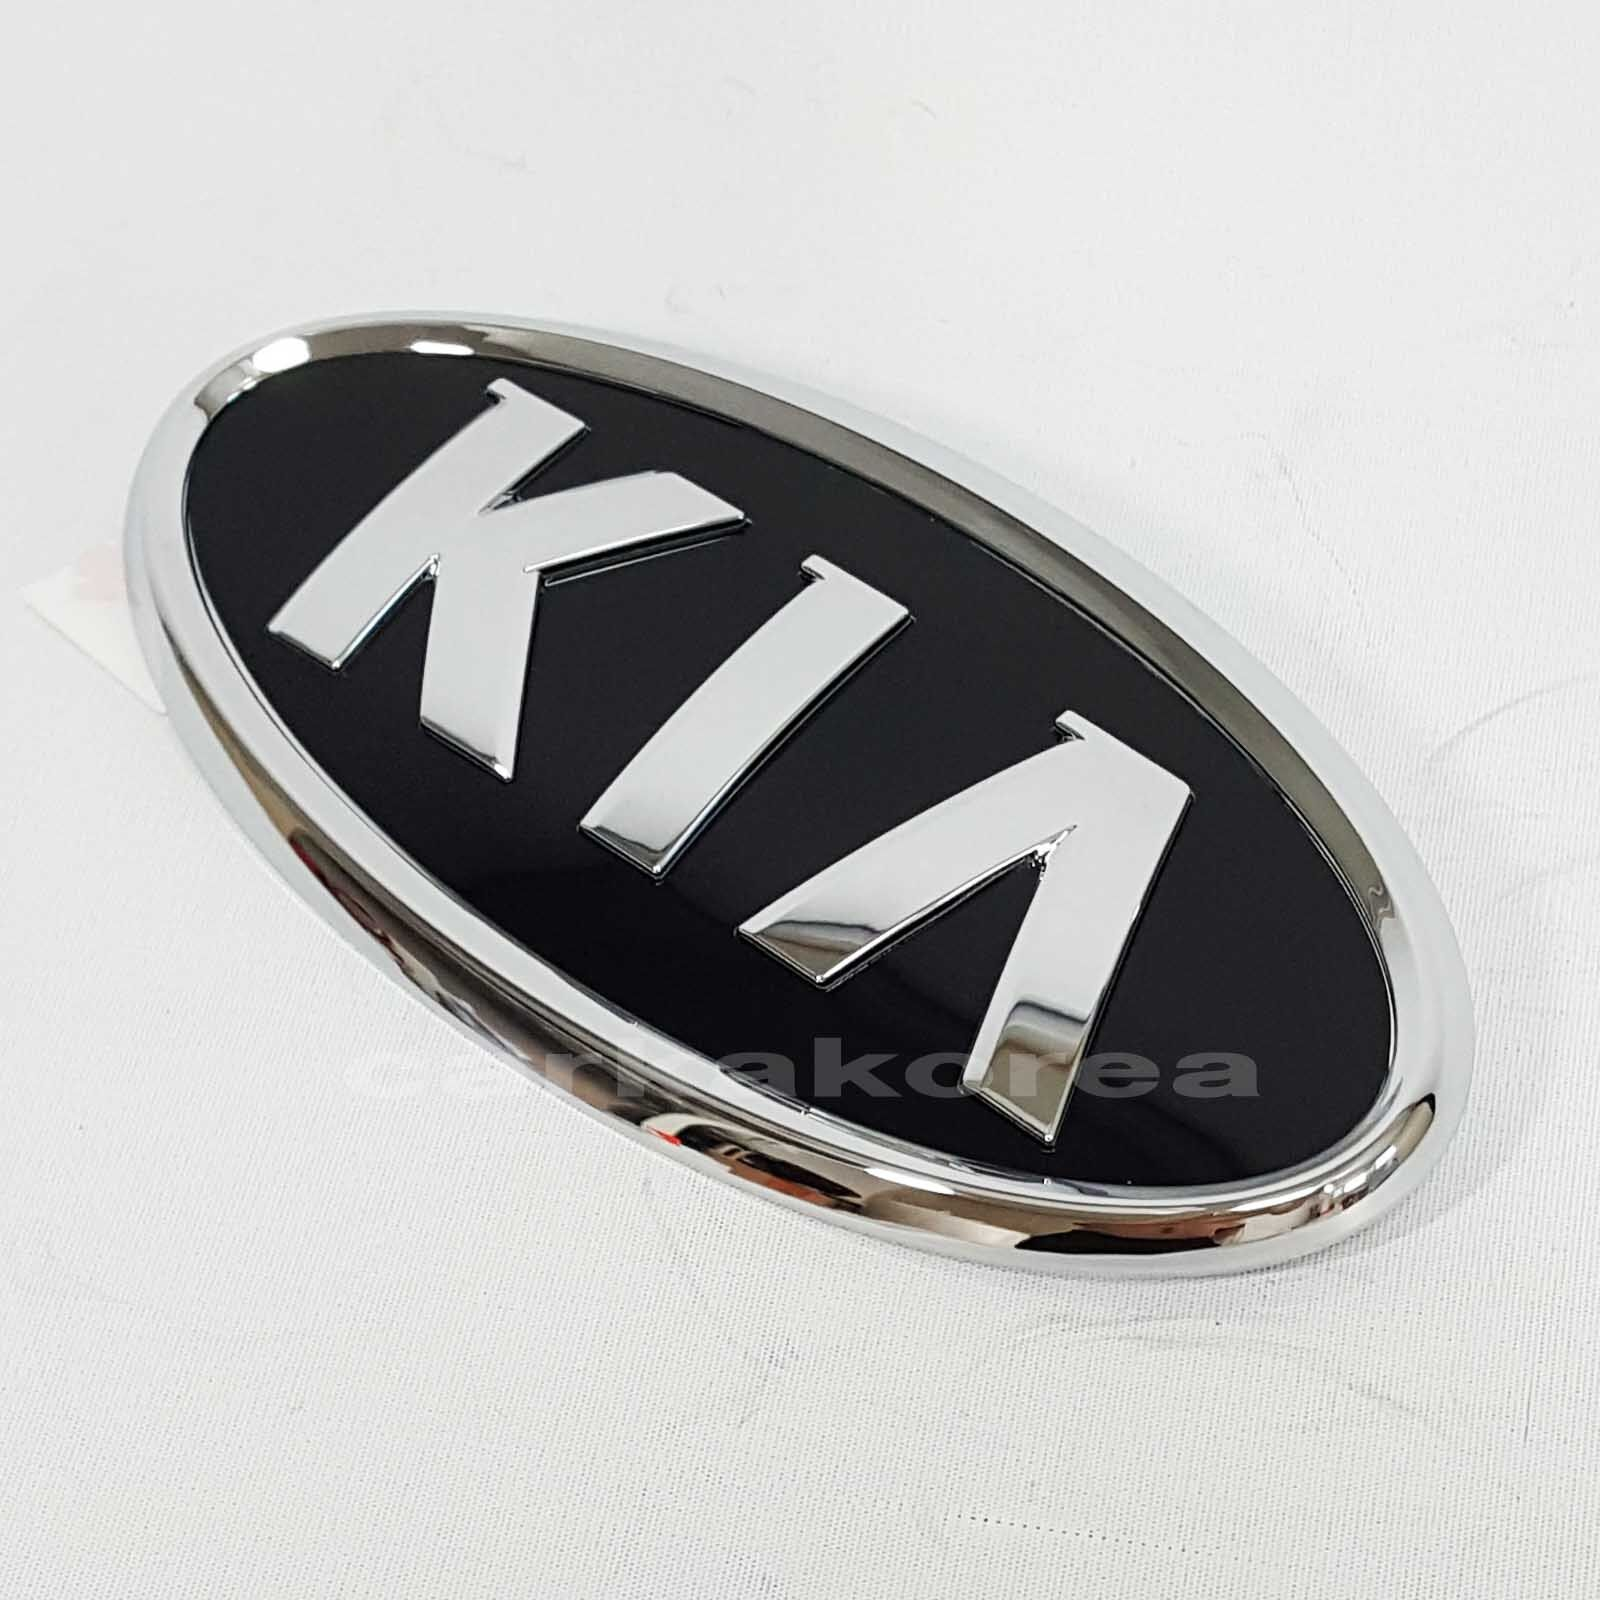 vehicle new kia sportage logo and discussion viewtopic forums emblem page prices official image t thread